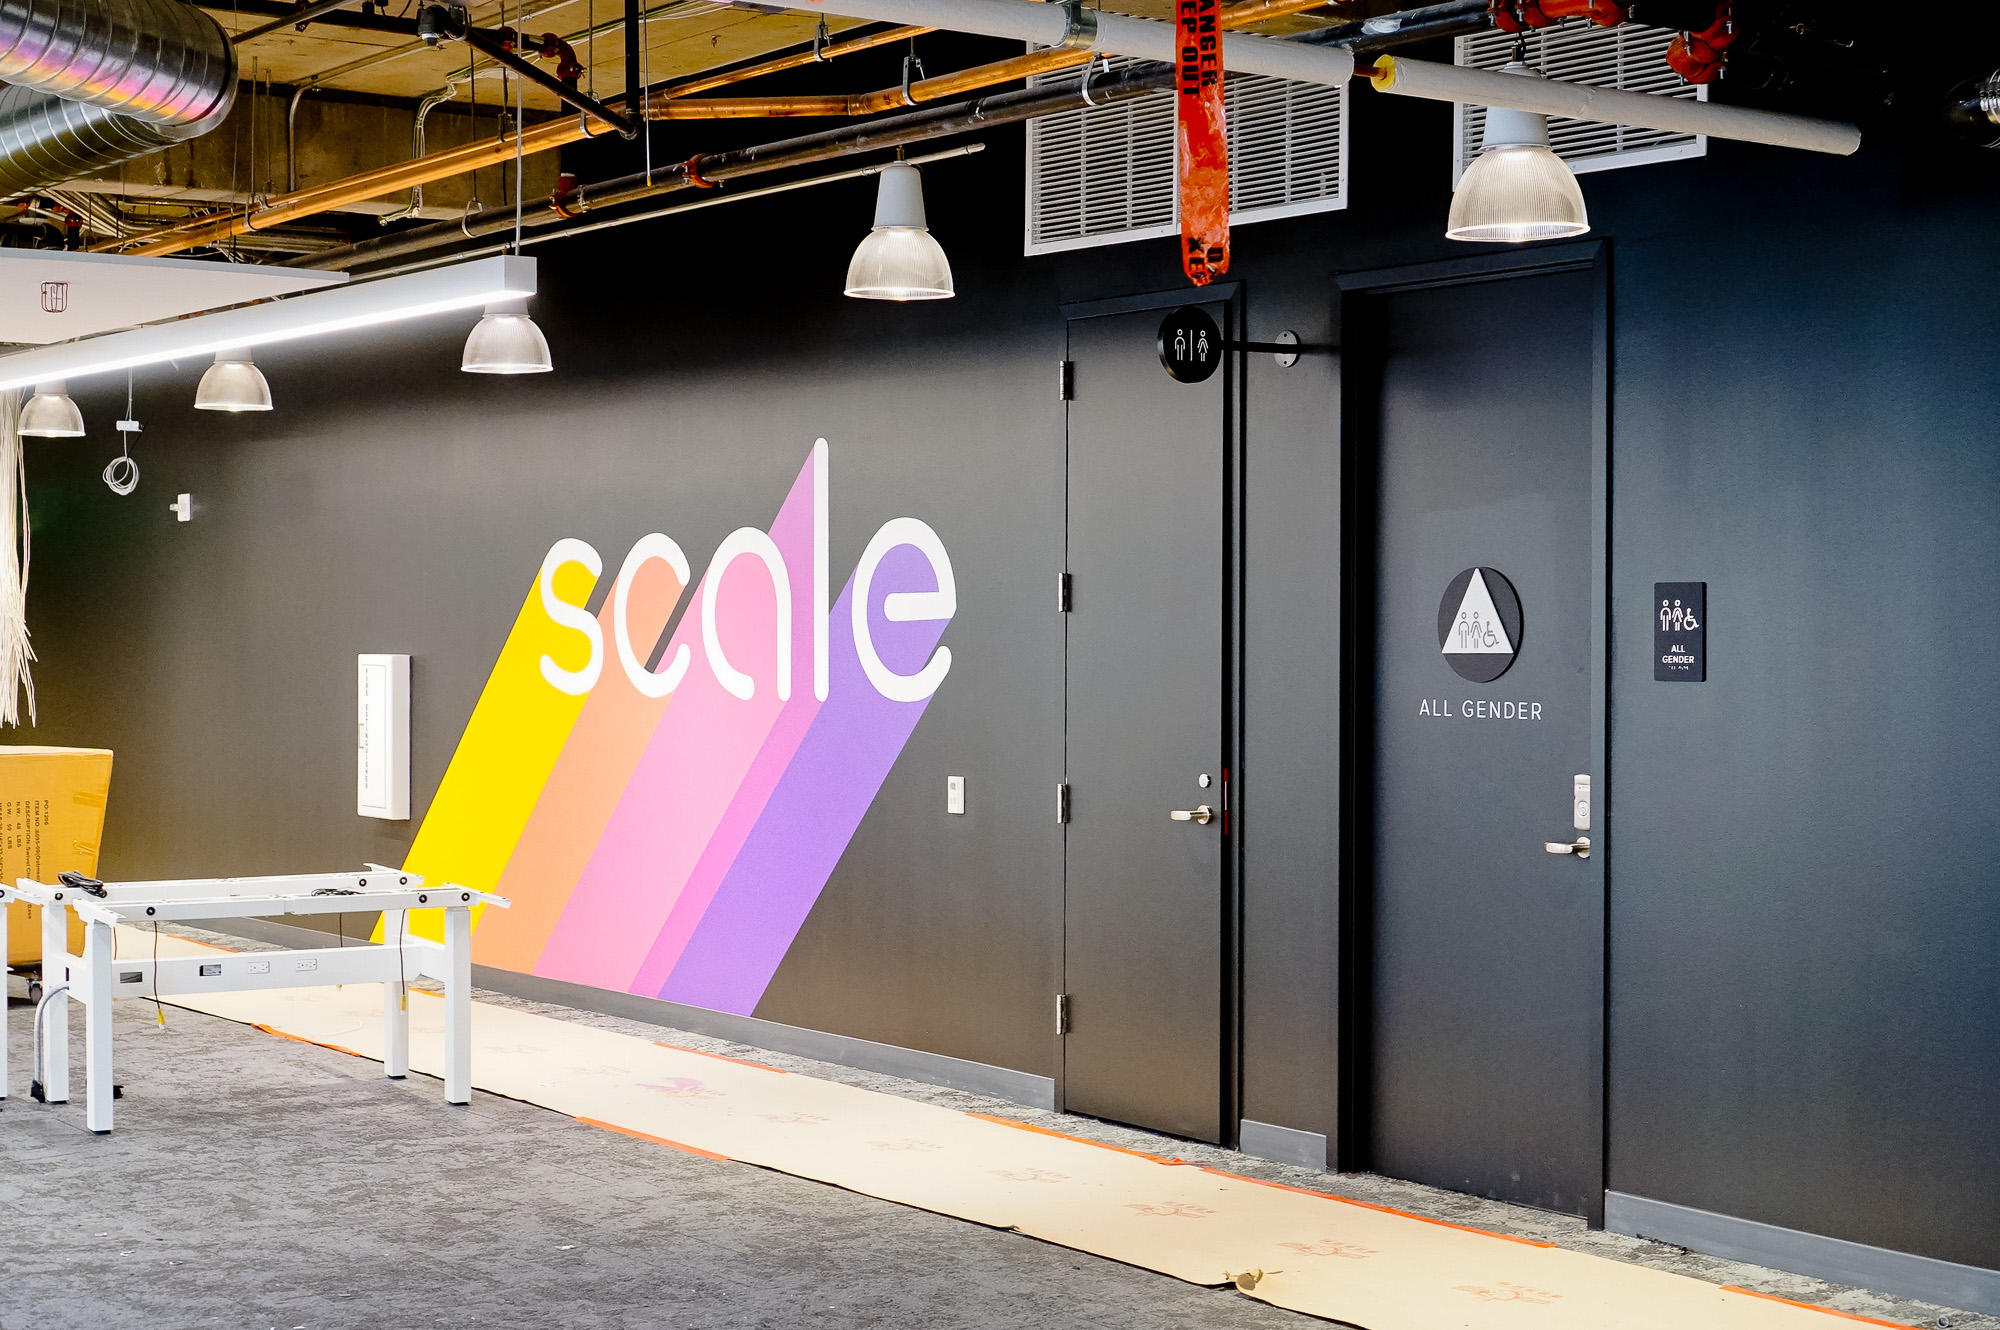 Modern, matte black restroom signs with white icons on black walls for the restrooms of Scale, a San Francisco based company delivering high quality training data for AI applications such as self-driving cars, mapping, AR/VR, robotics, and more.